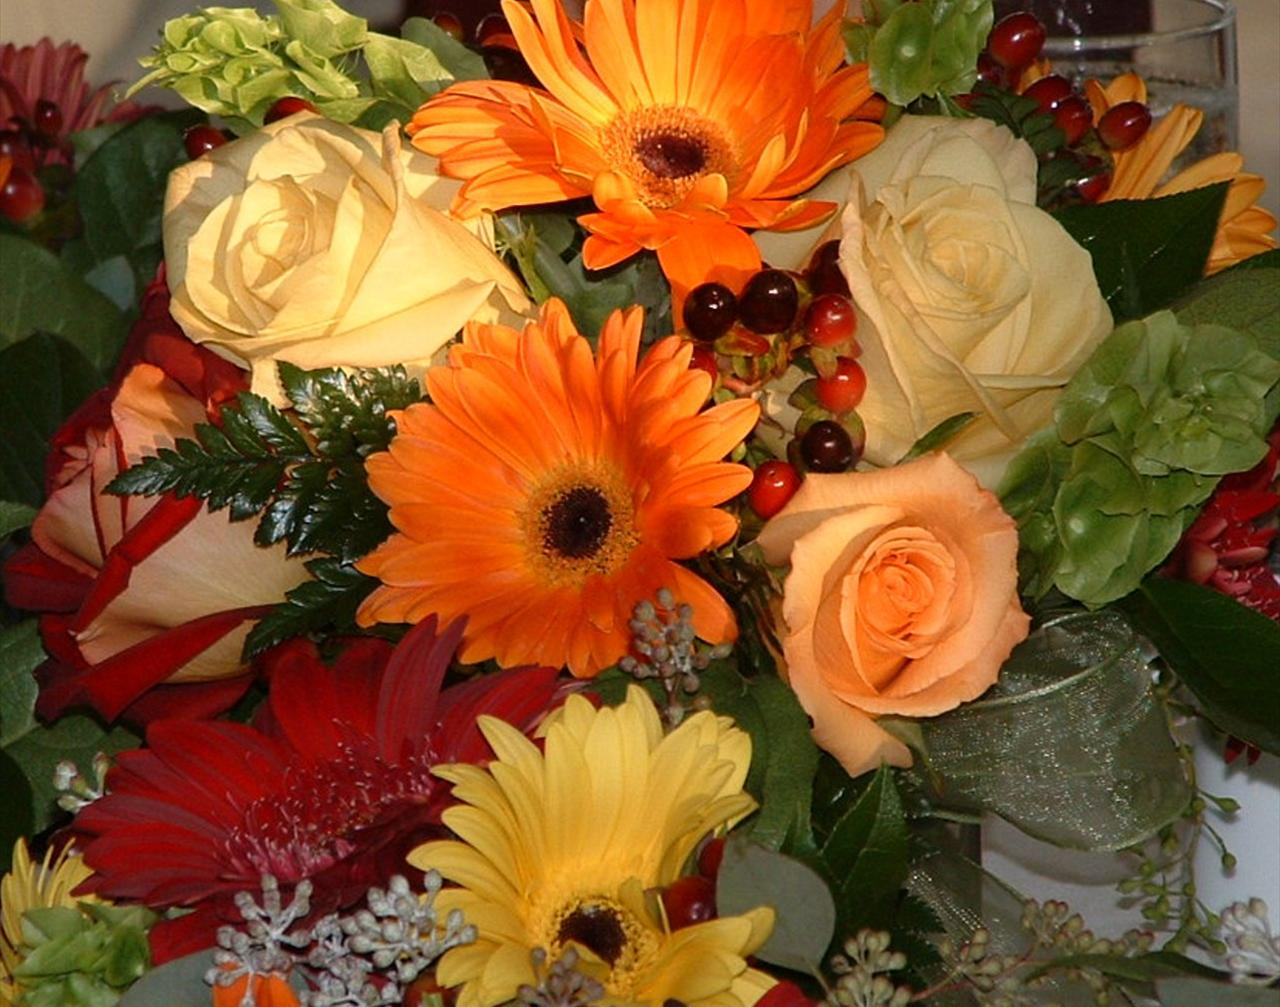 Autumn flower pictures for wallpaper wallpapersafari - Flowers that bloom in autumn ...